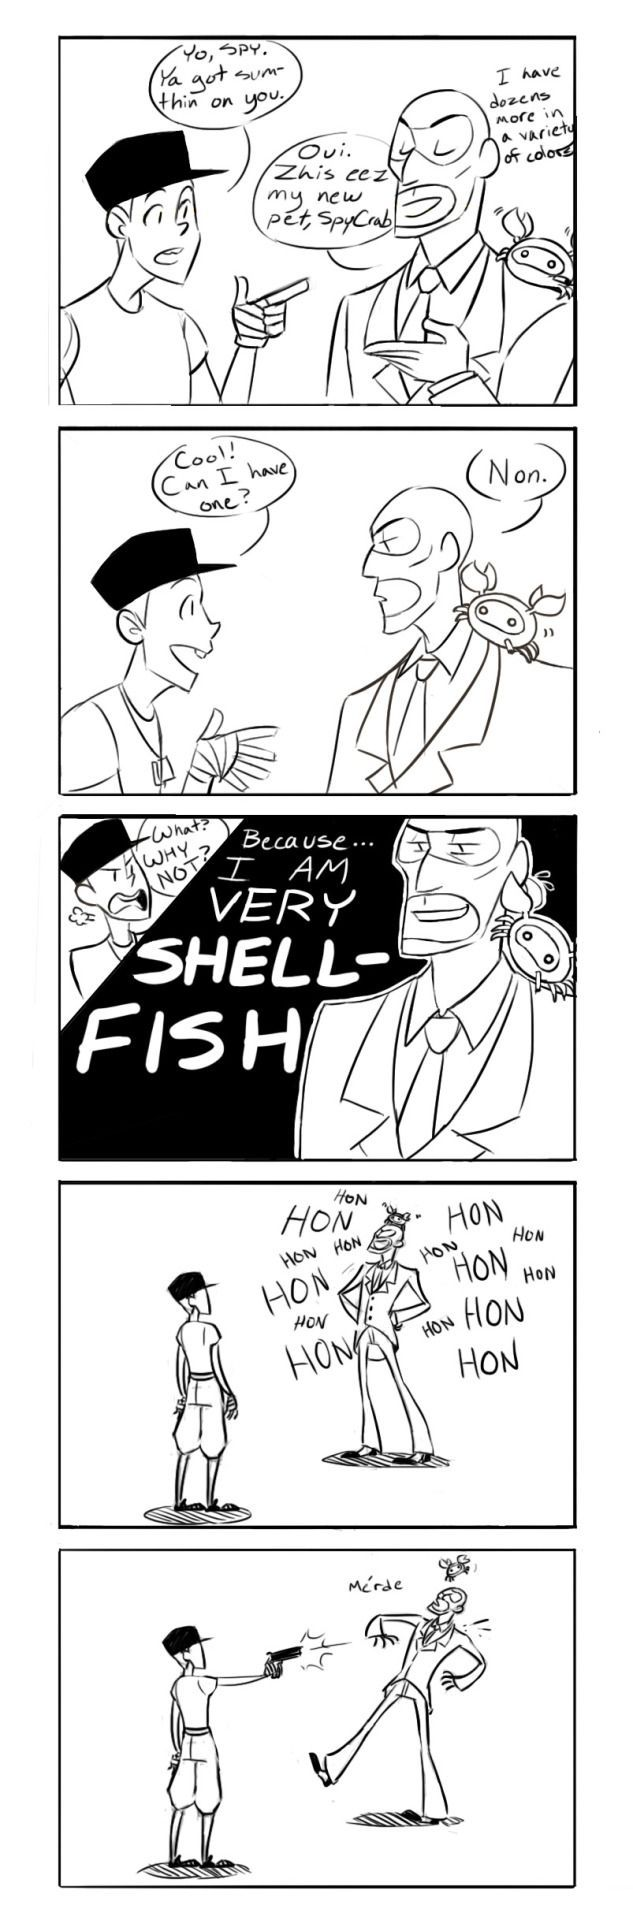 Spy, you're just a WHALE of a good time! That pun went SWIMMINGLY! I'm making jokes just for the HALIBUT!